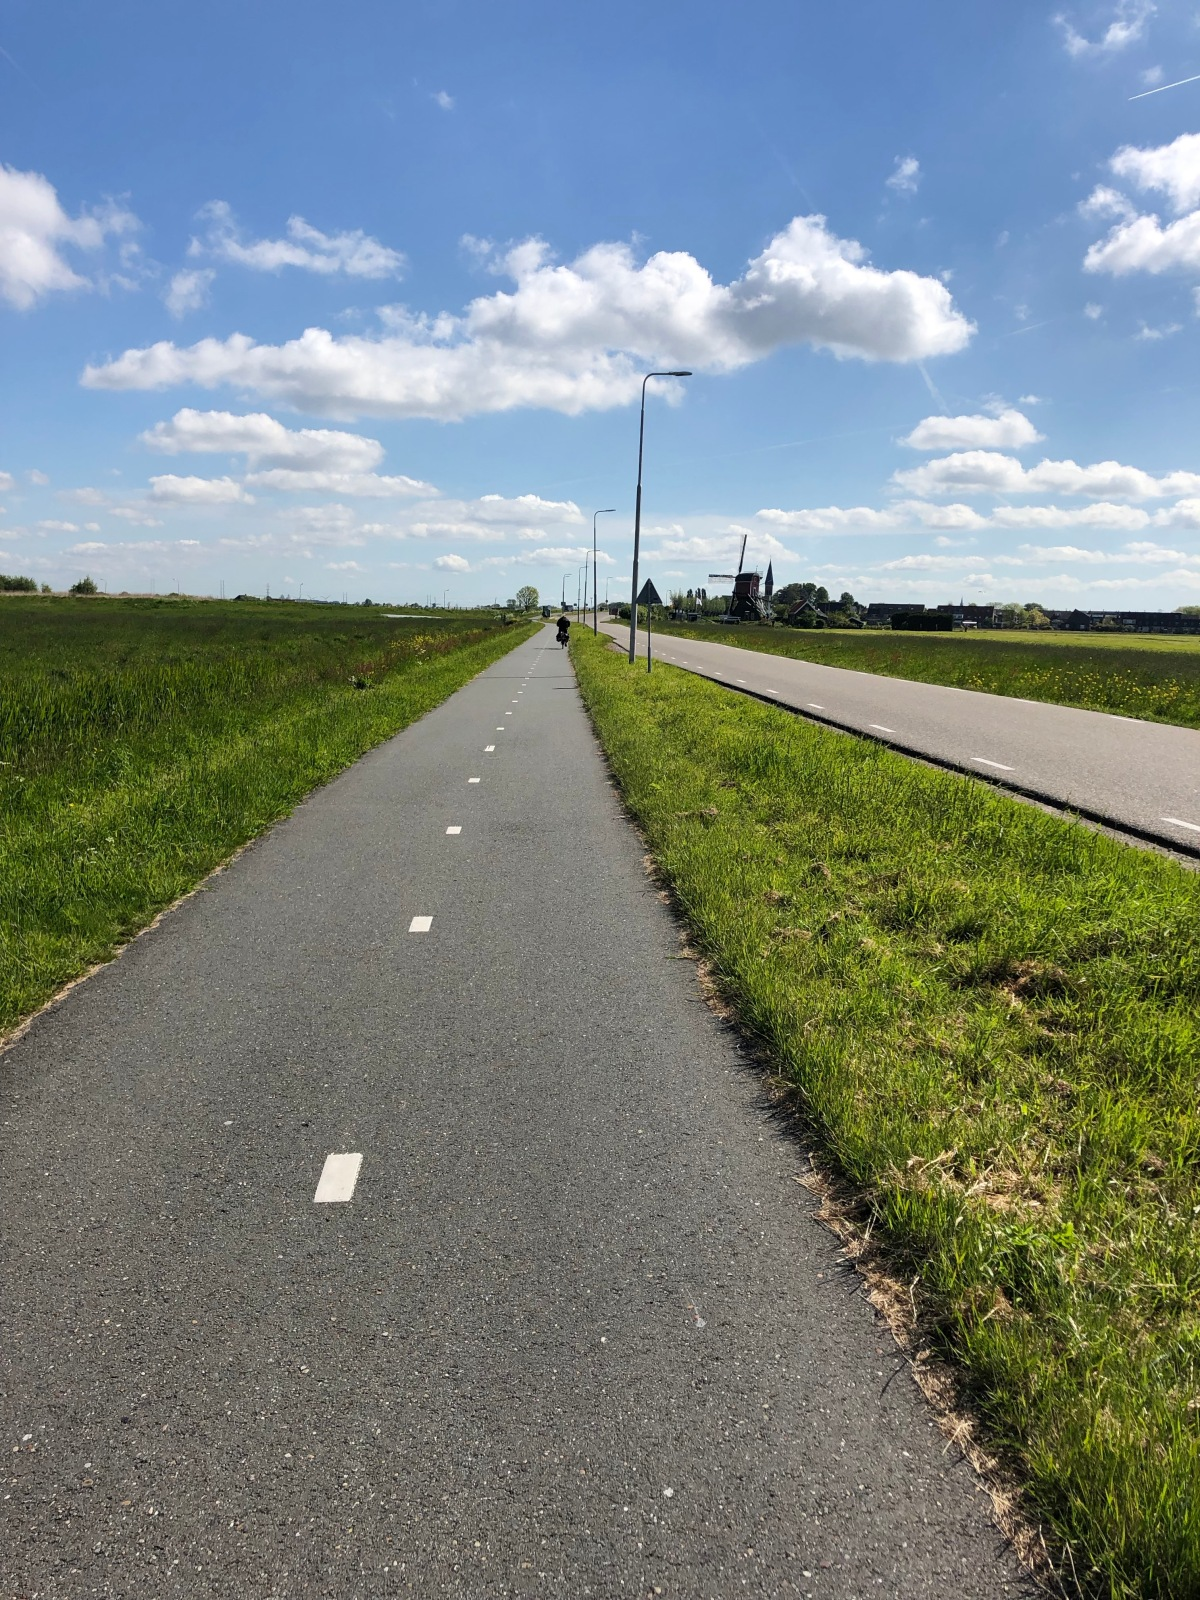 Clear blue Dutch sky. The bike path with the road on the right.